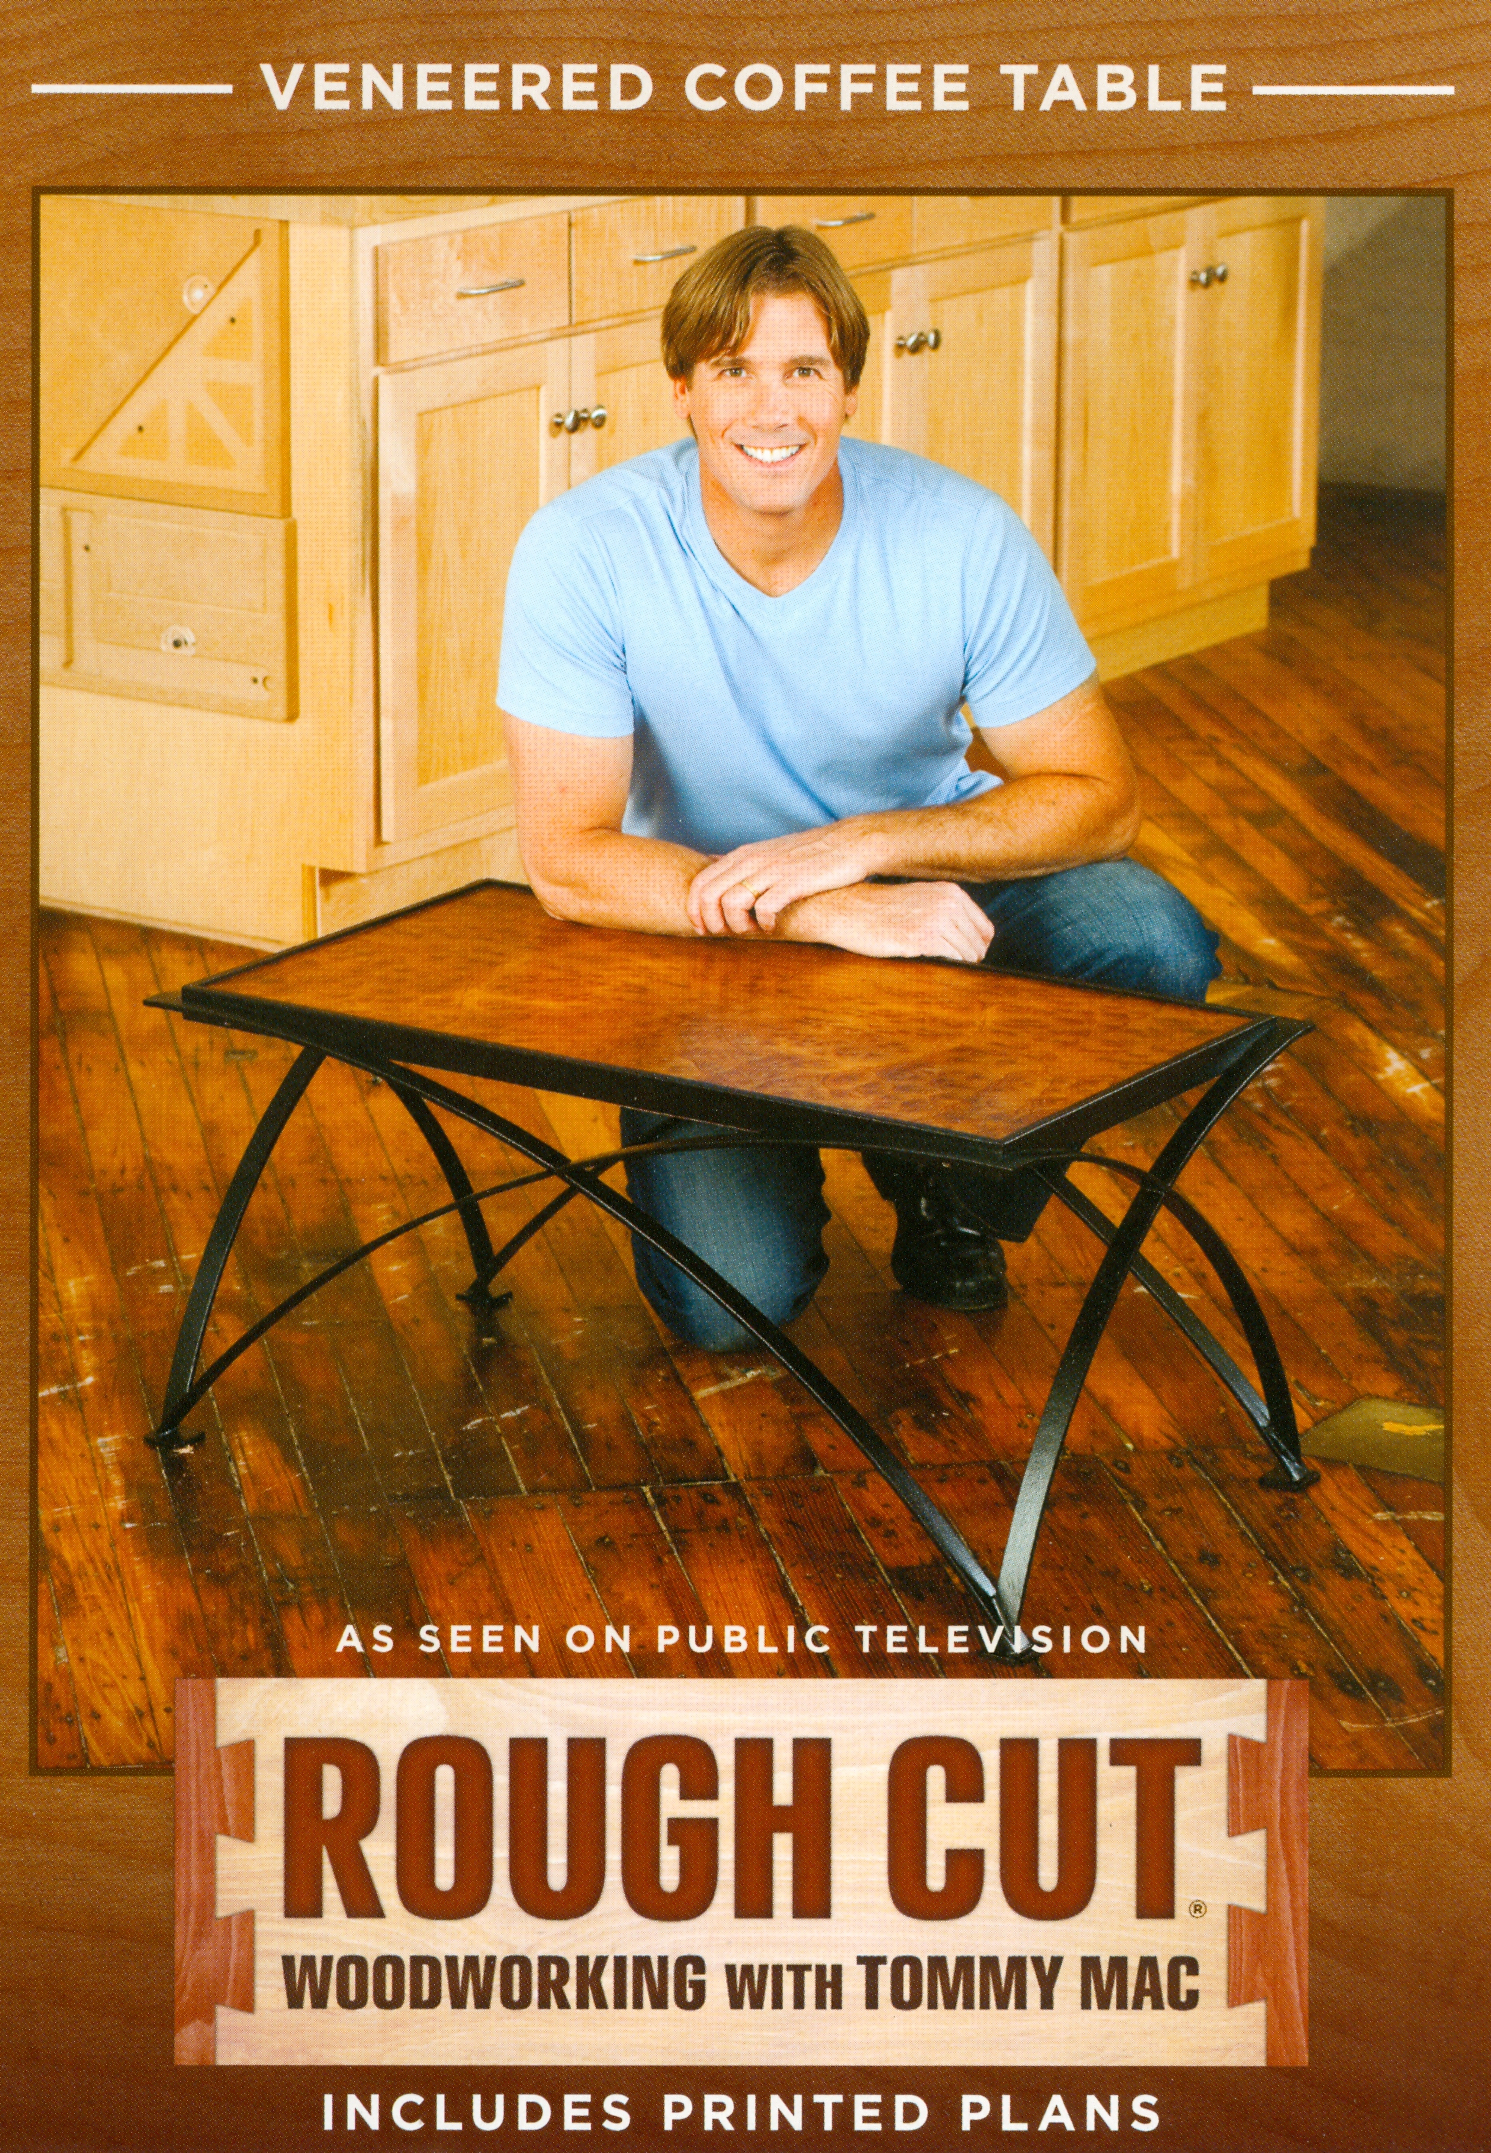 Rough Cut - Woodworking with Tommy Mac: Veneered Coffee Table with Metal Frame